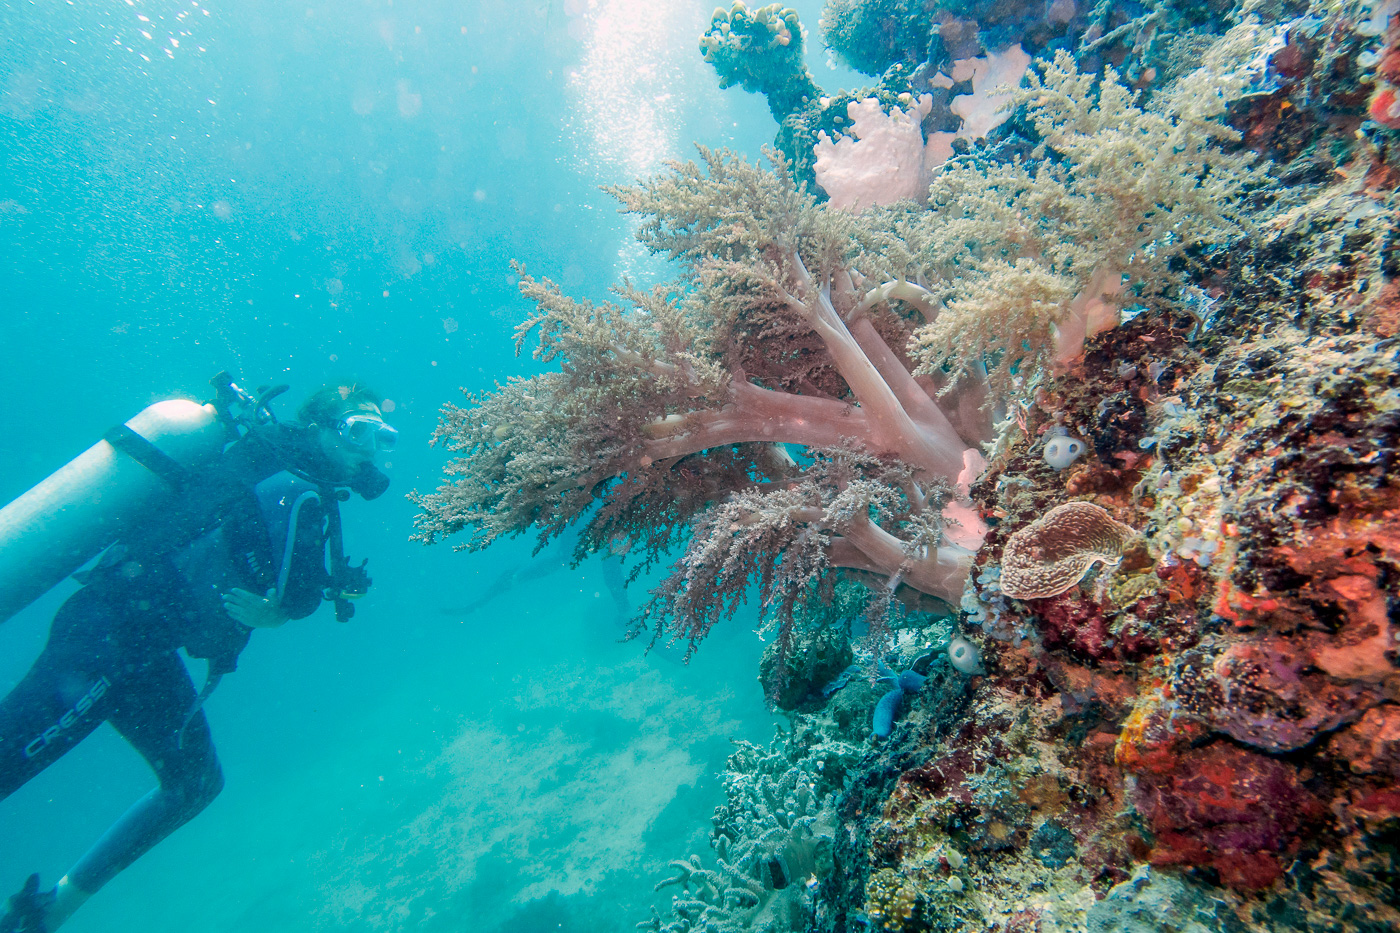 Best scuba diving sites in the philippines